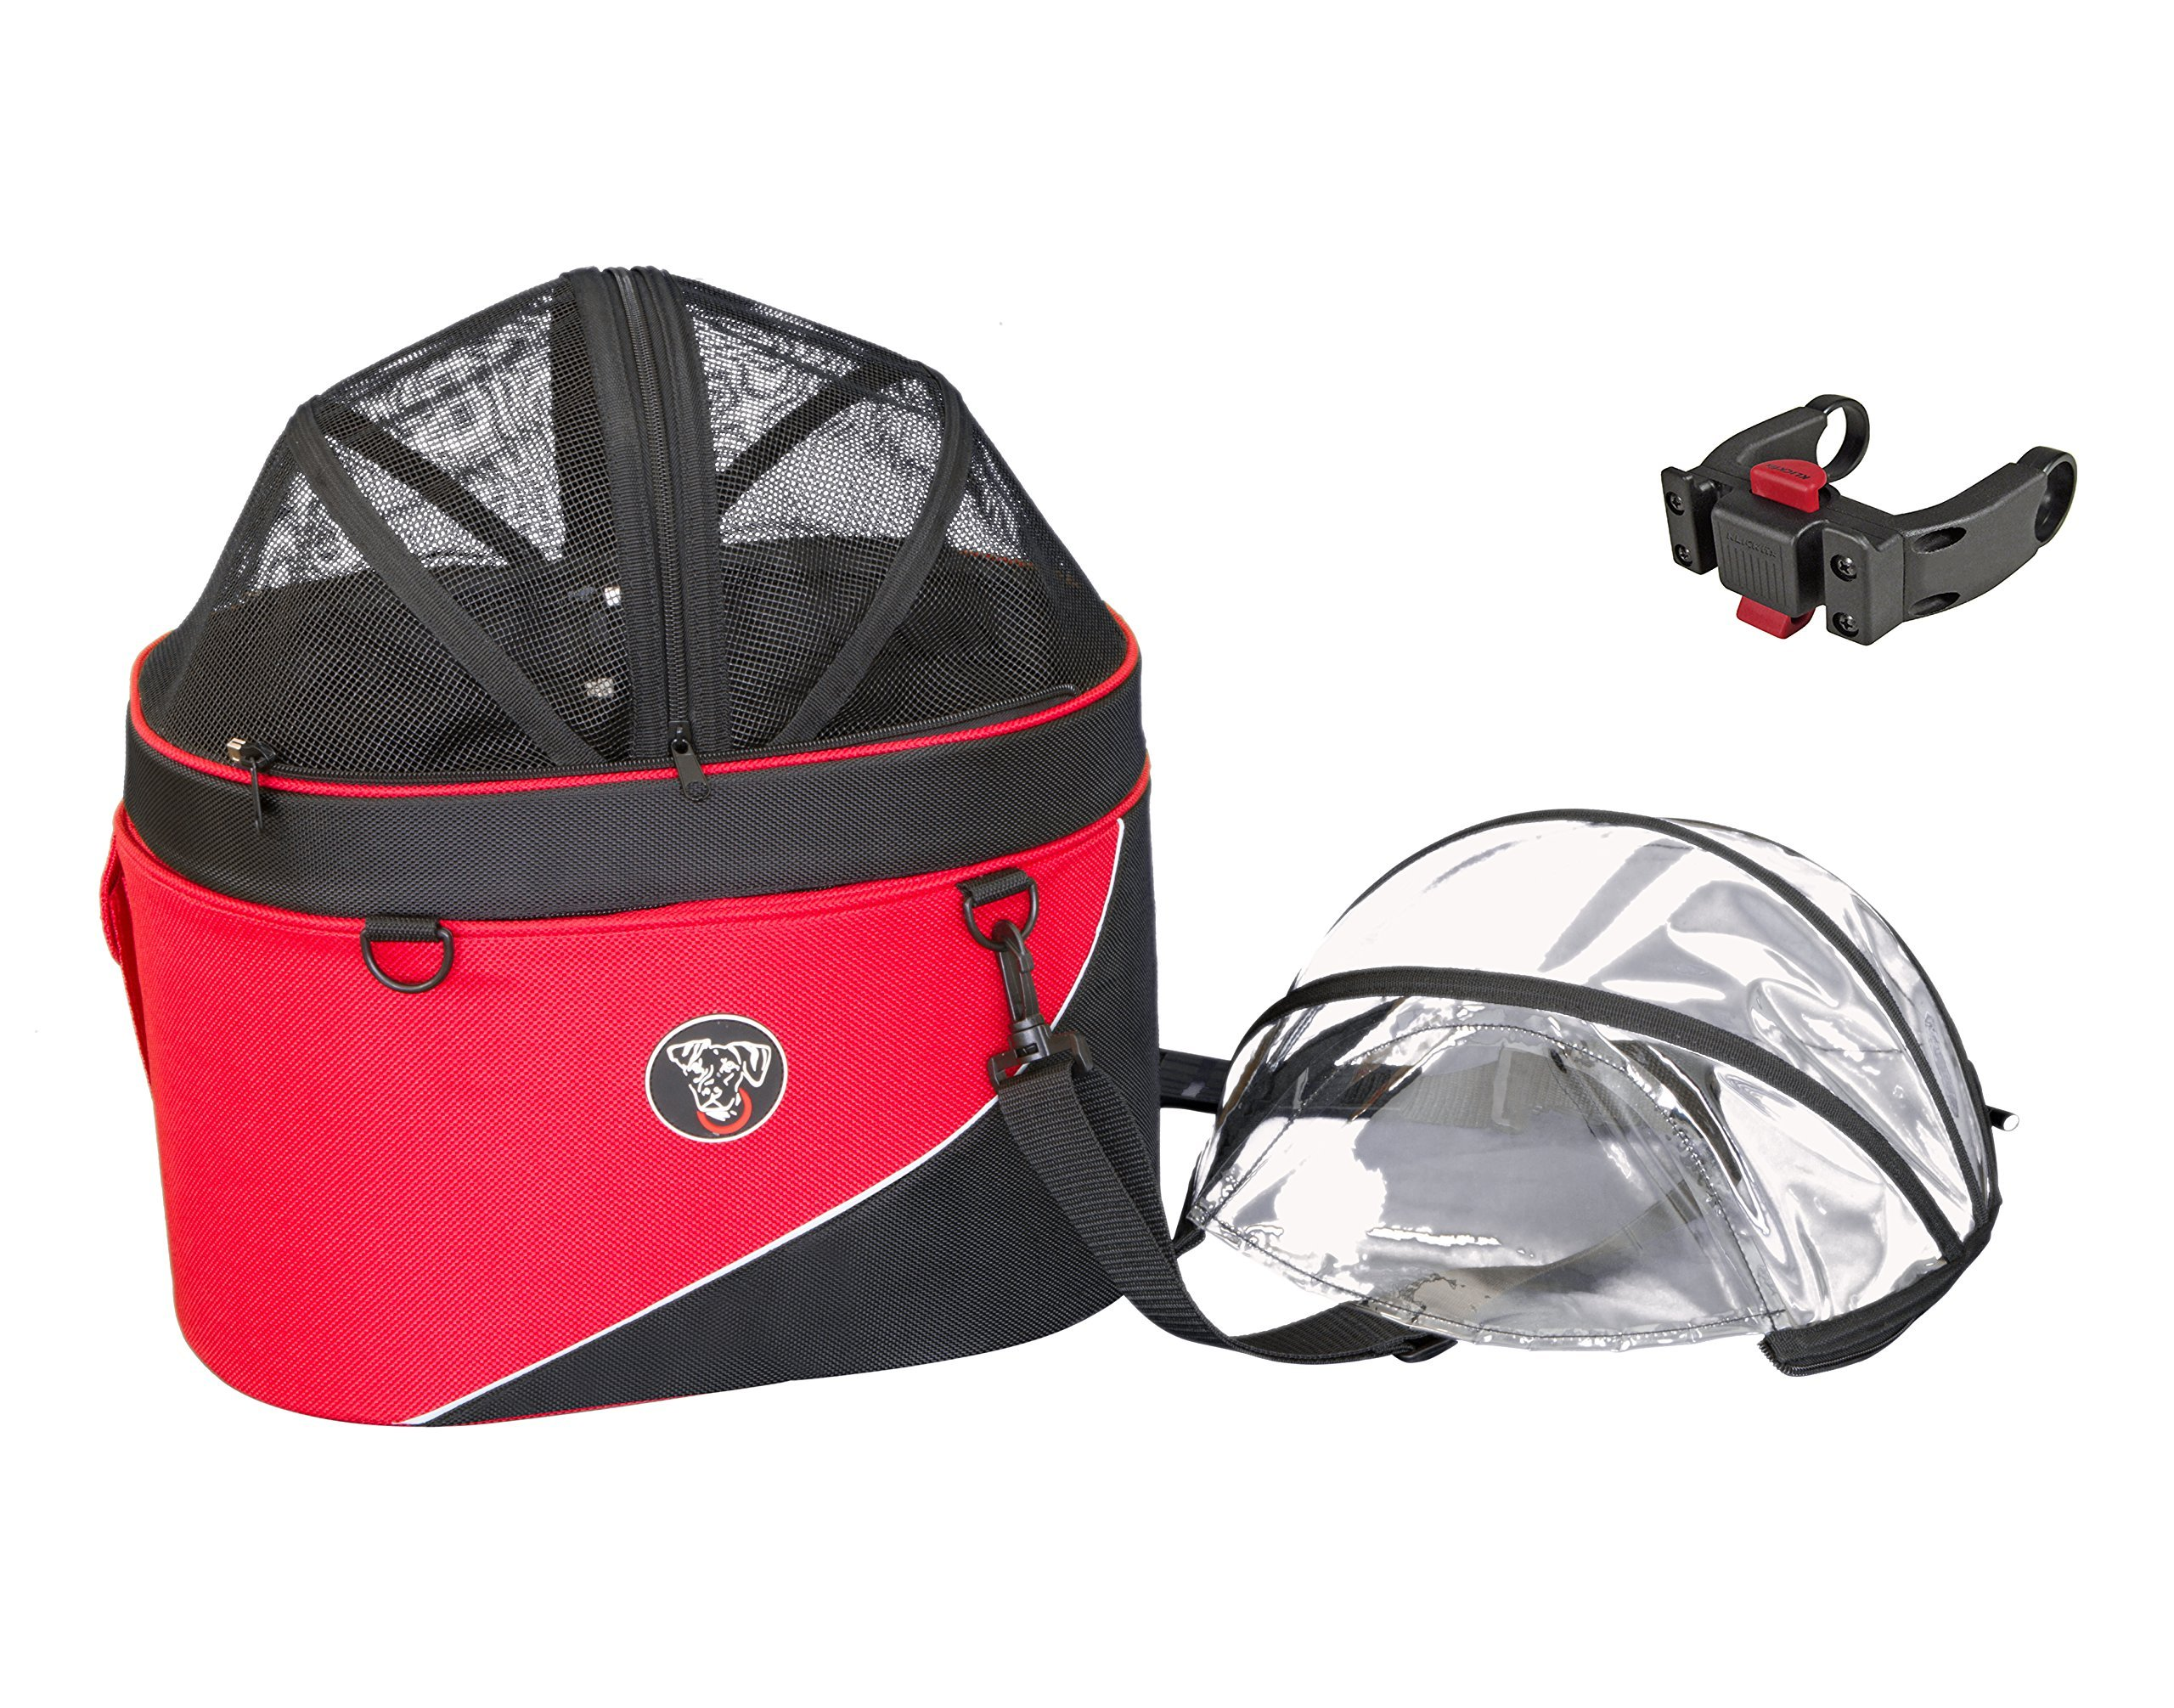 DoggyRide Cocoon Bike Basket for Pets, Red